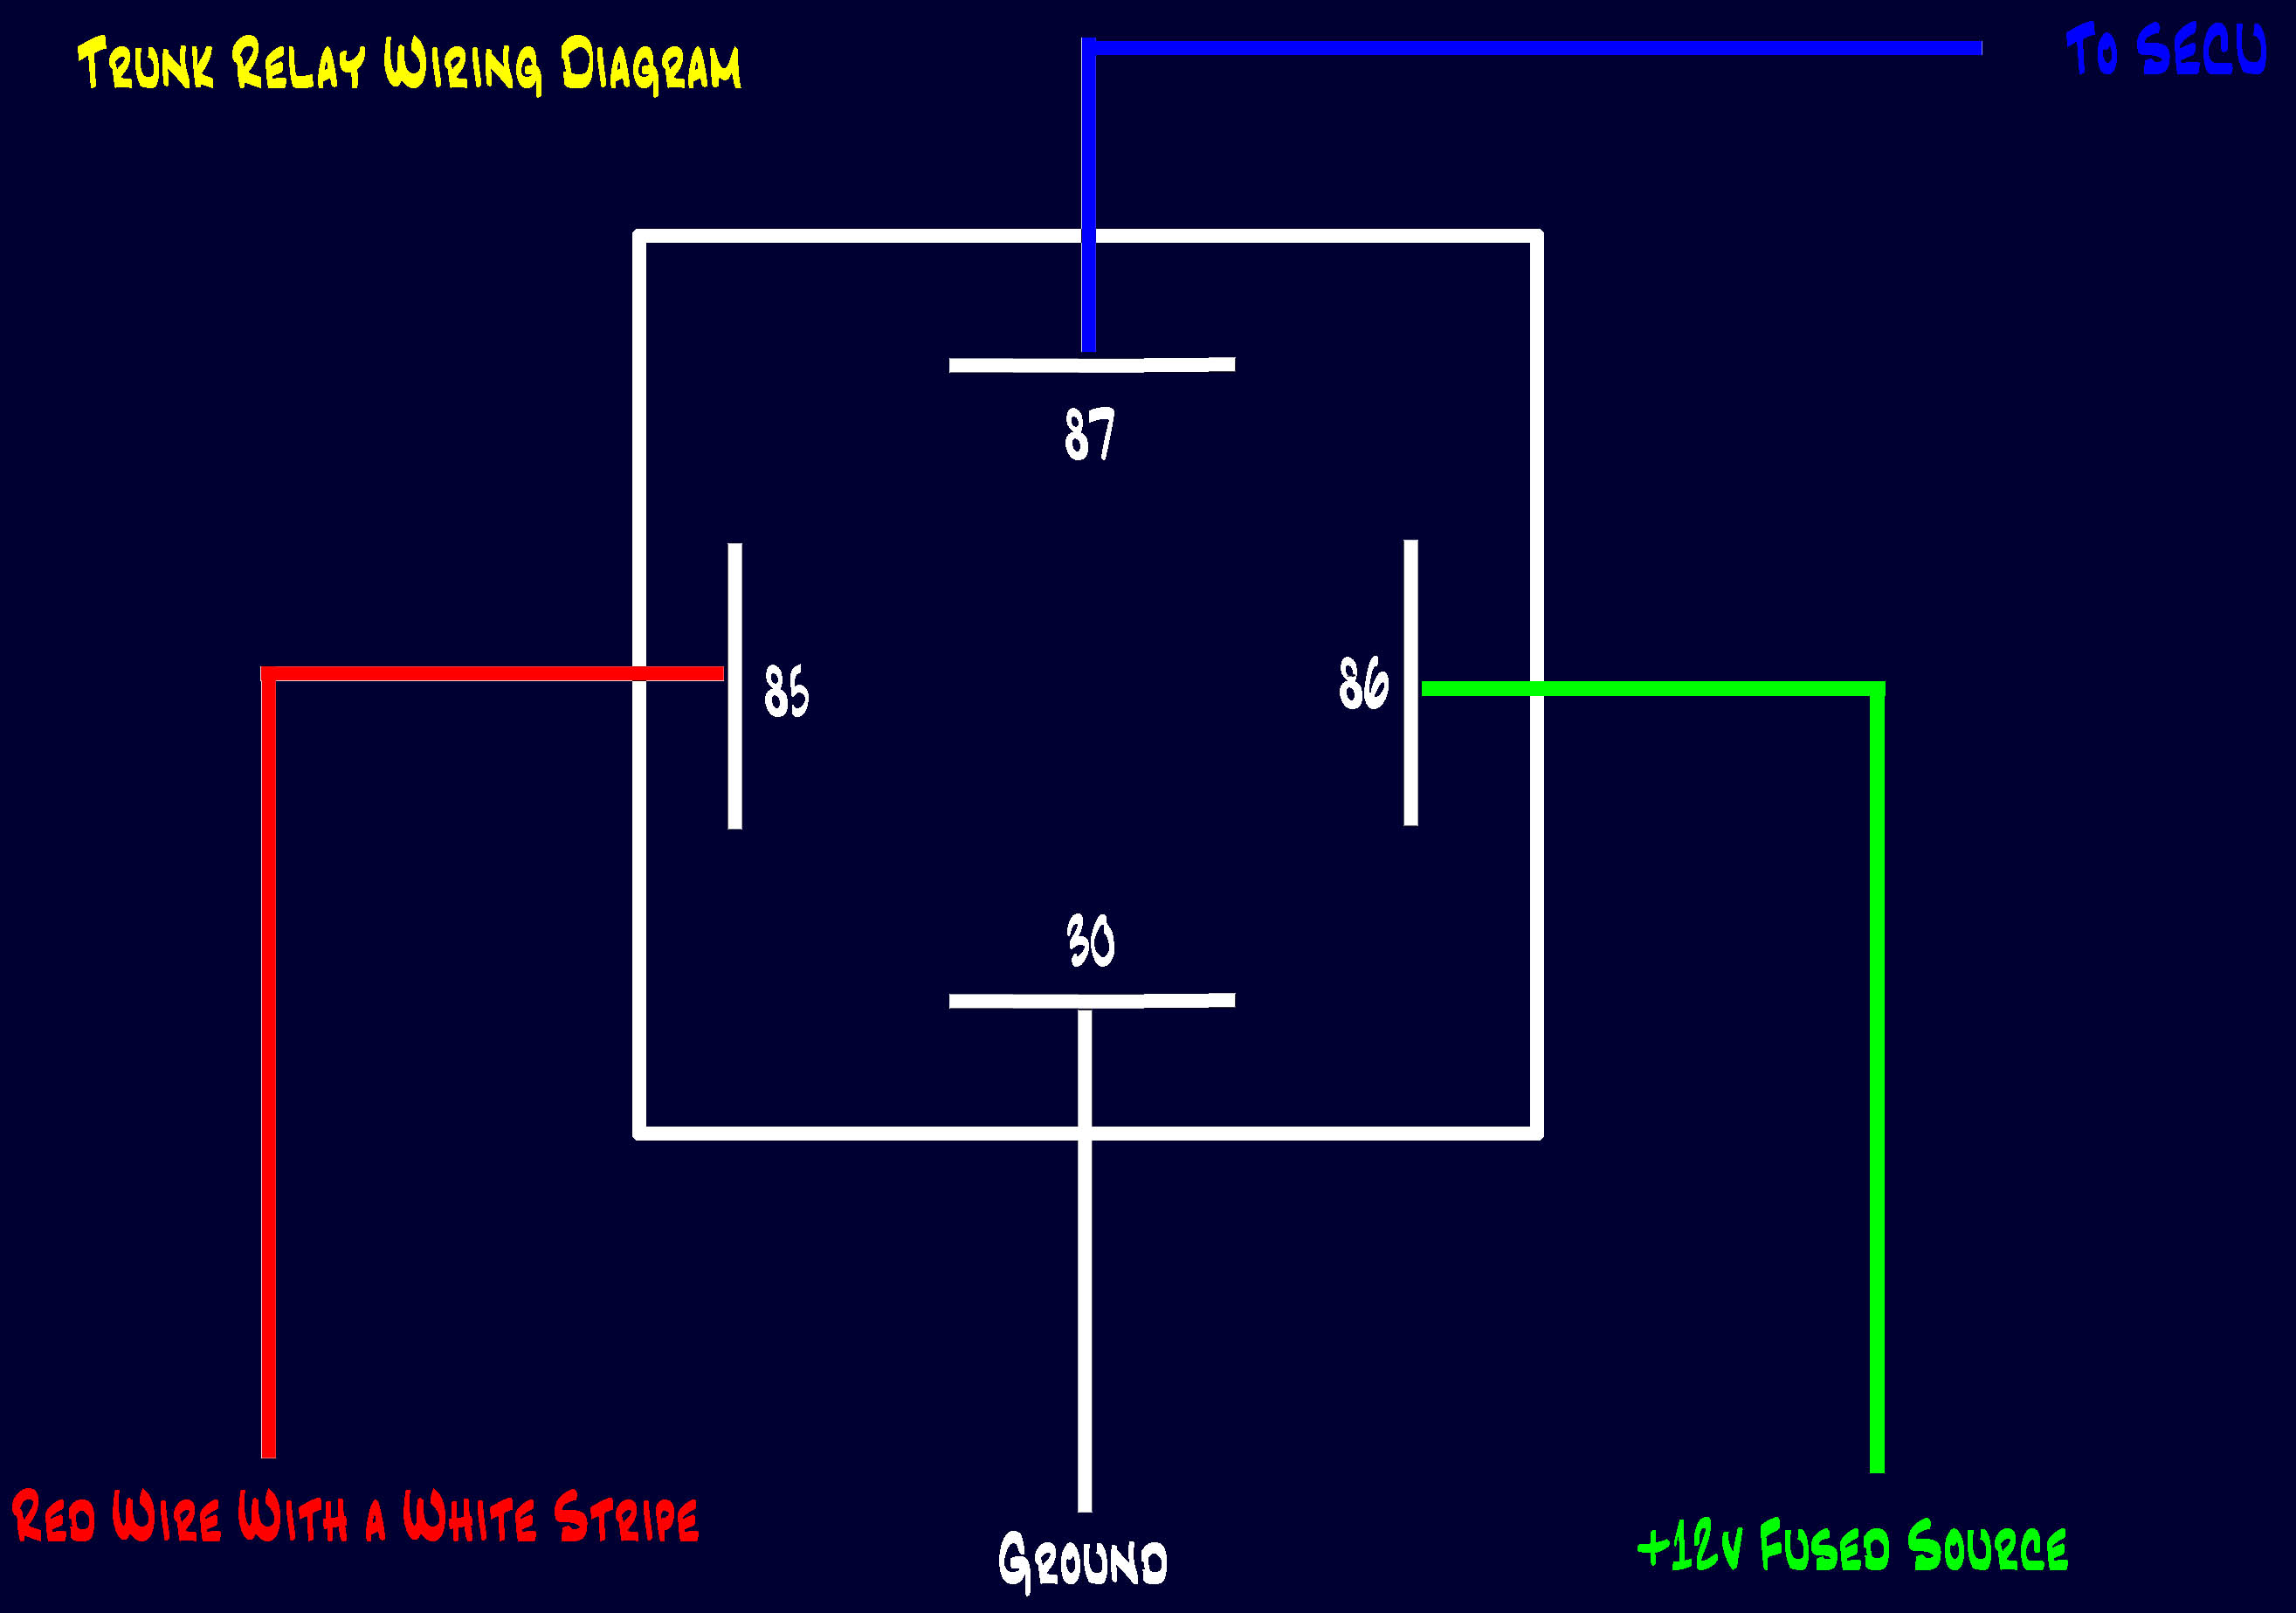 Nissan Remote Start Relay Wiring Electrical Diagram 1973 Duster Maxima Theowensfamily Com V3 Rh Starter Car